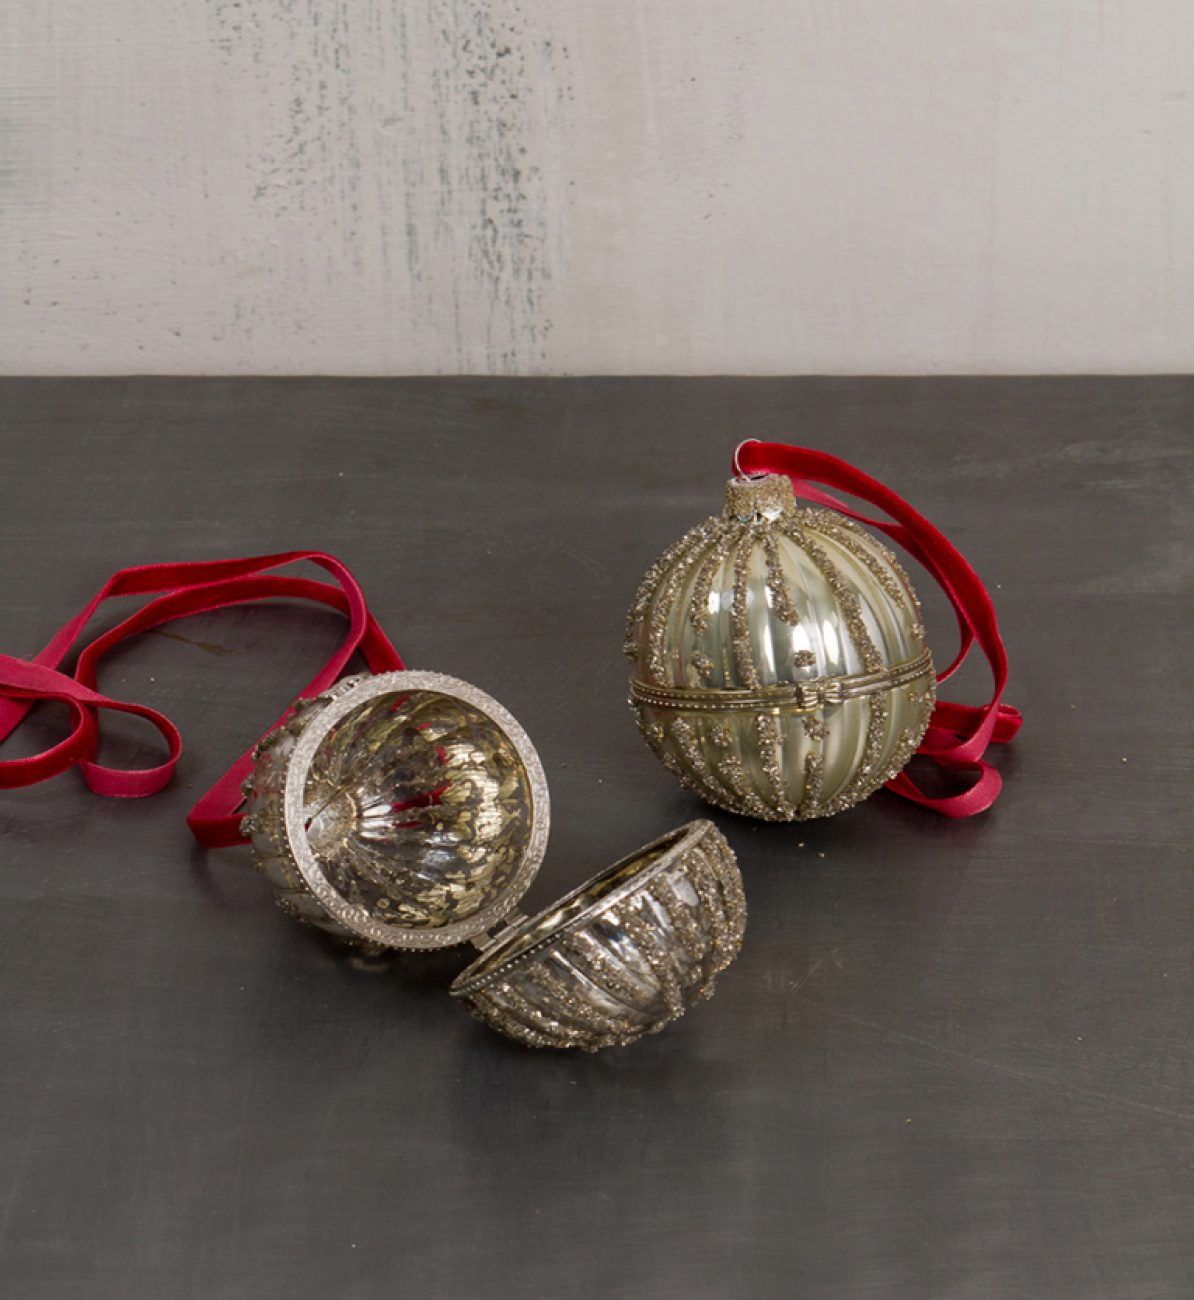 xmas ball eggs antique silver 12144 - Antique Silver Christmas Decorations